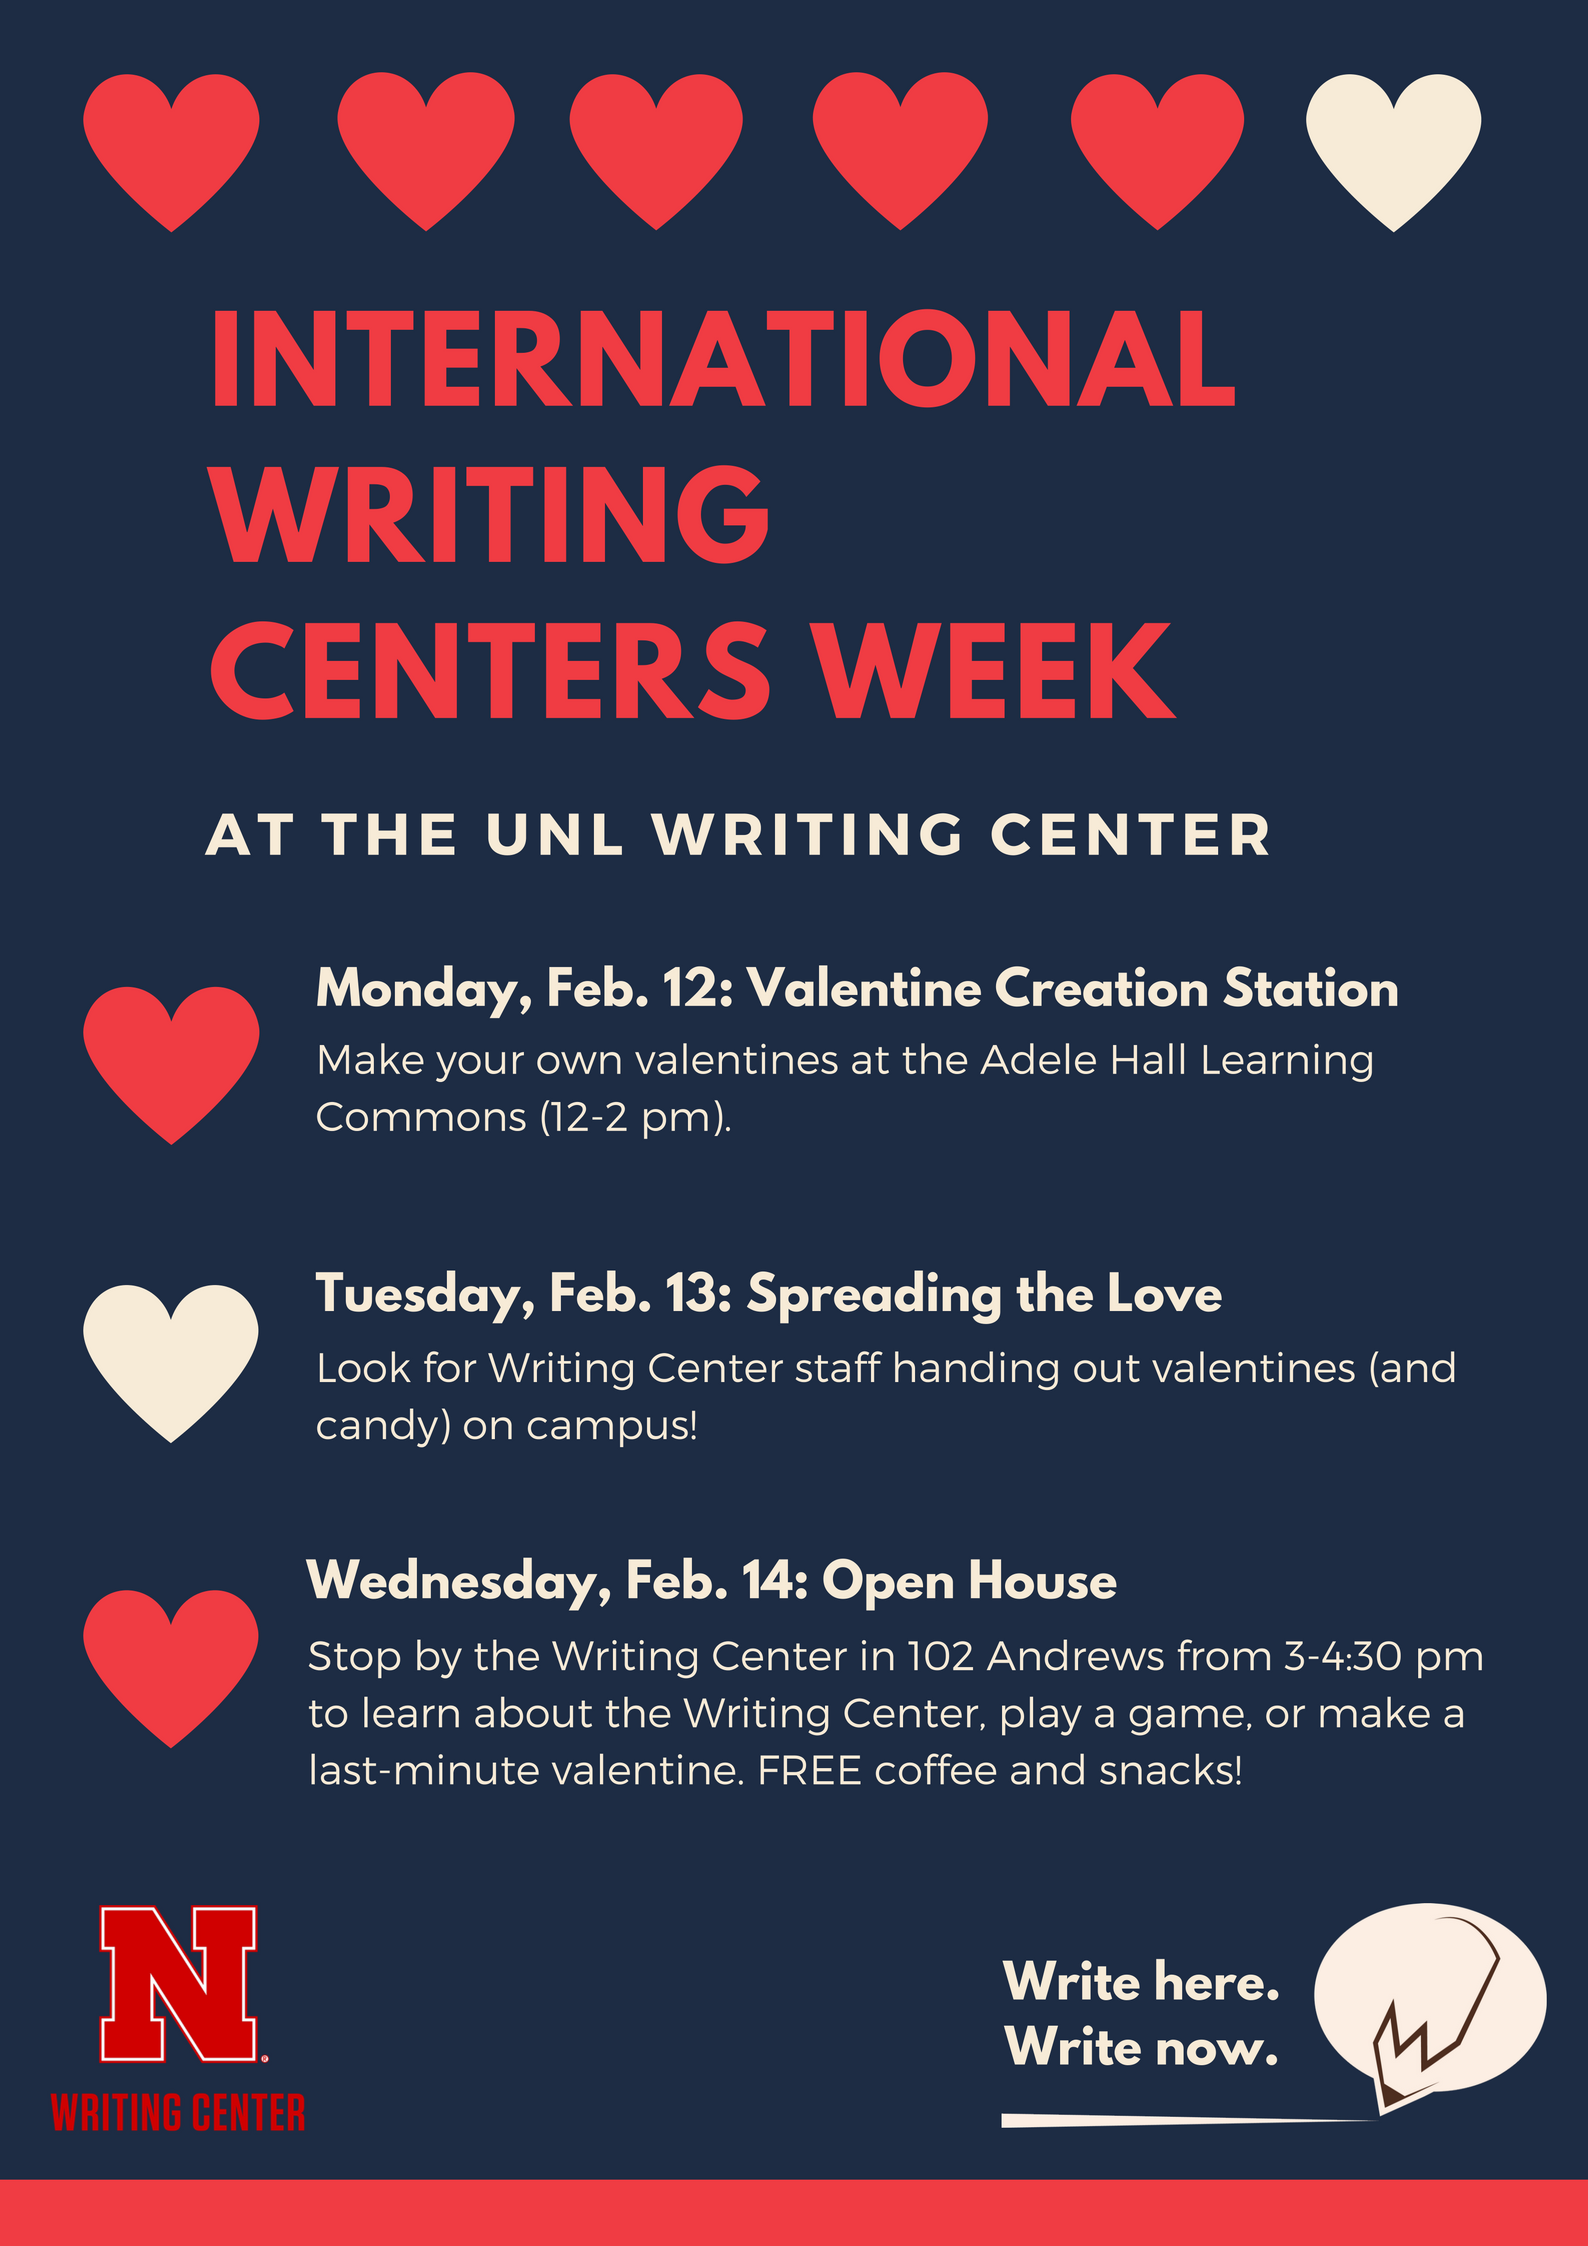 International Writing Centers Week at the Writing Center